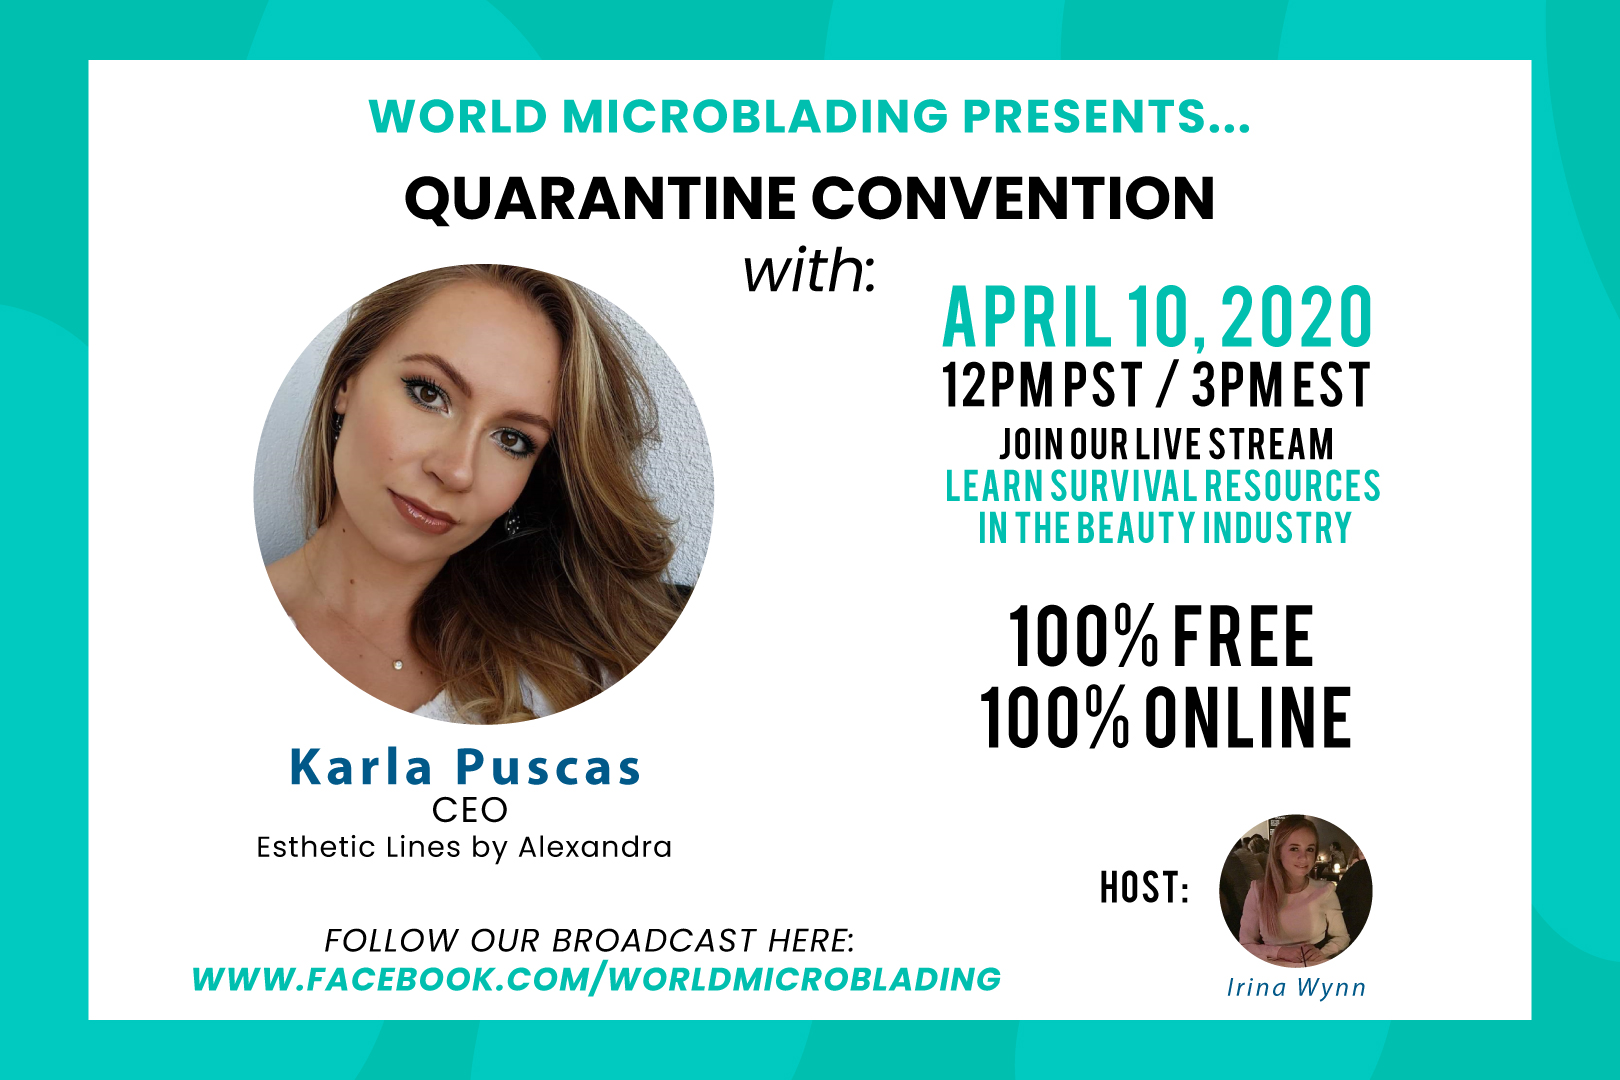 Karla Puscas: LIVE at the Quarantine Convention for the Beauty Industry